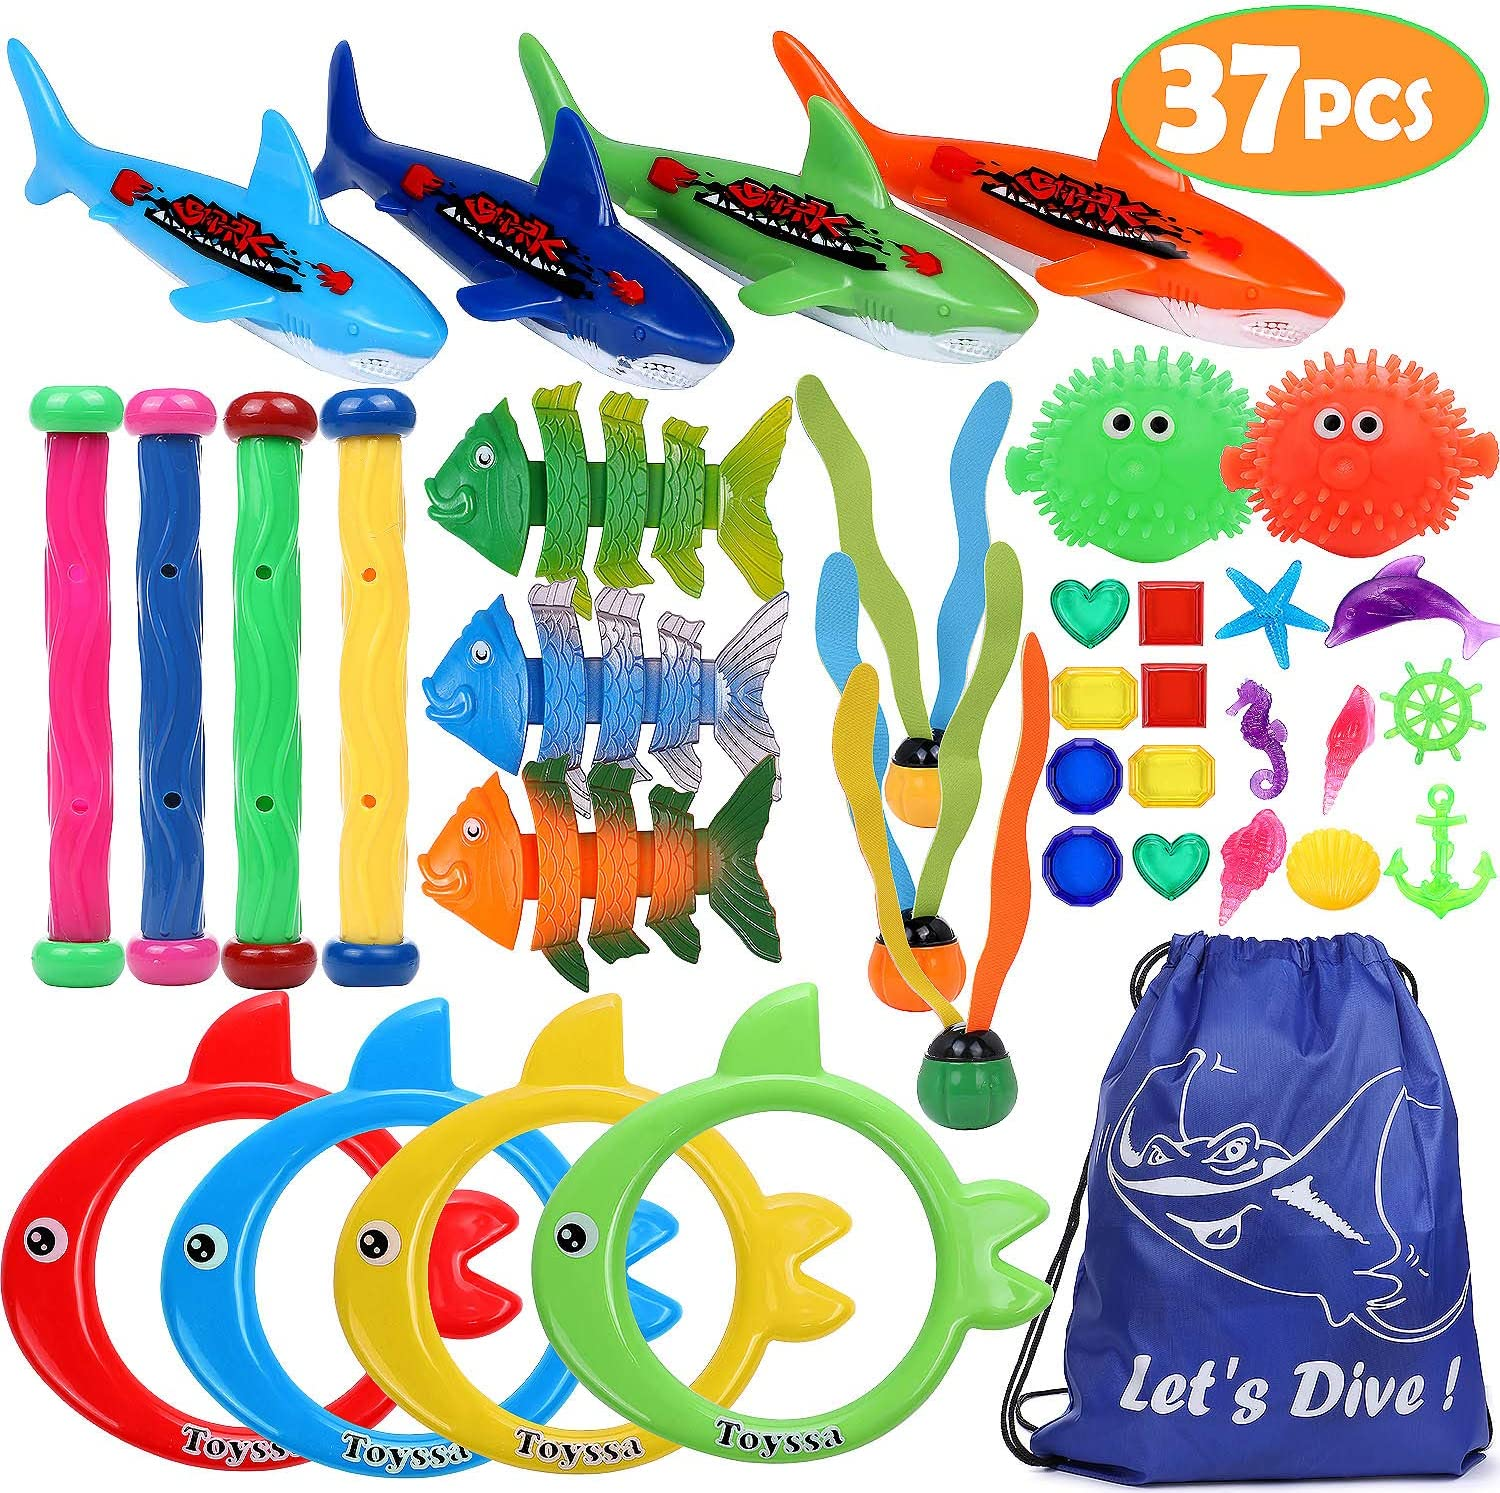 37 PCS Diving Toys Underwater Swimming Pool Toy Diving Rings, Diving Sticks, Diving Fish, Diving Sharks, Diving Seaweeds, and Diving Gems Under Water Games Training Gift for Kids Boys Girls